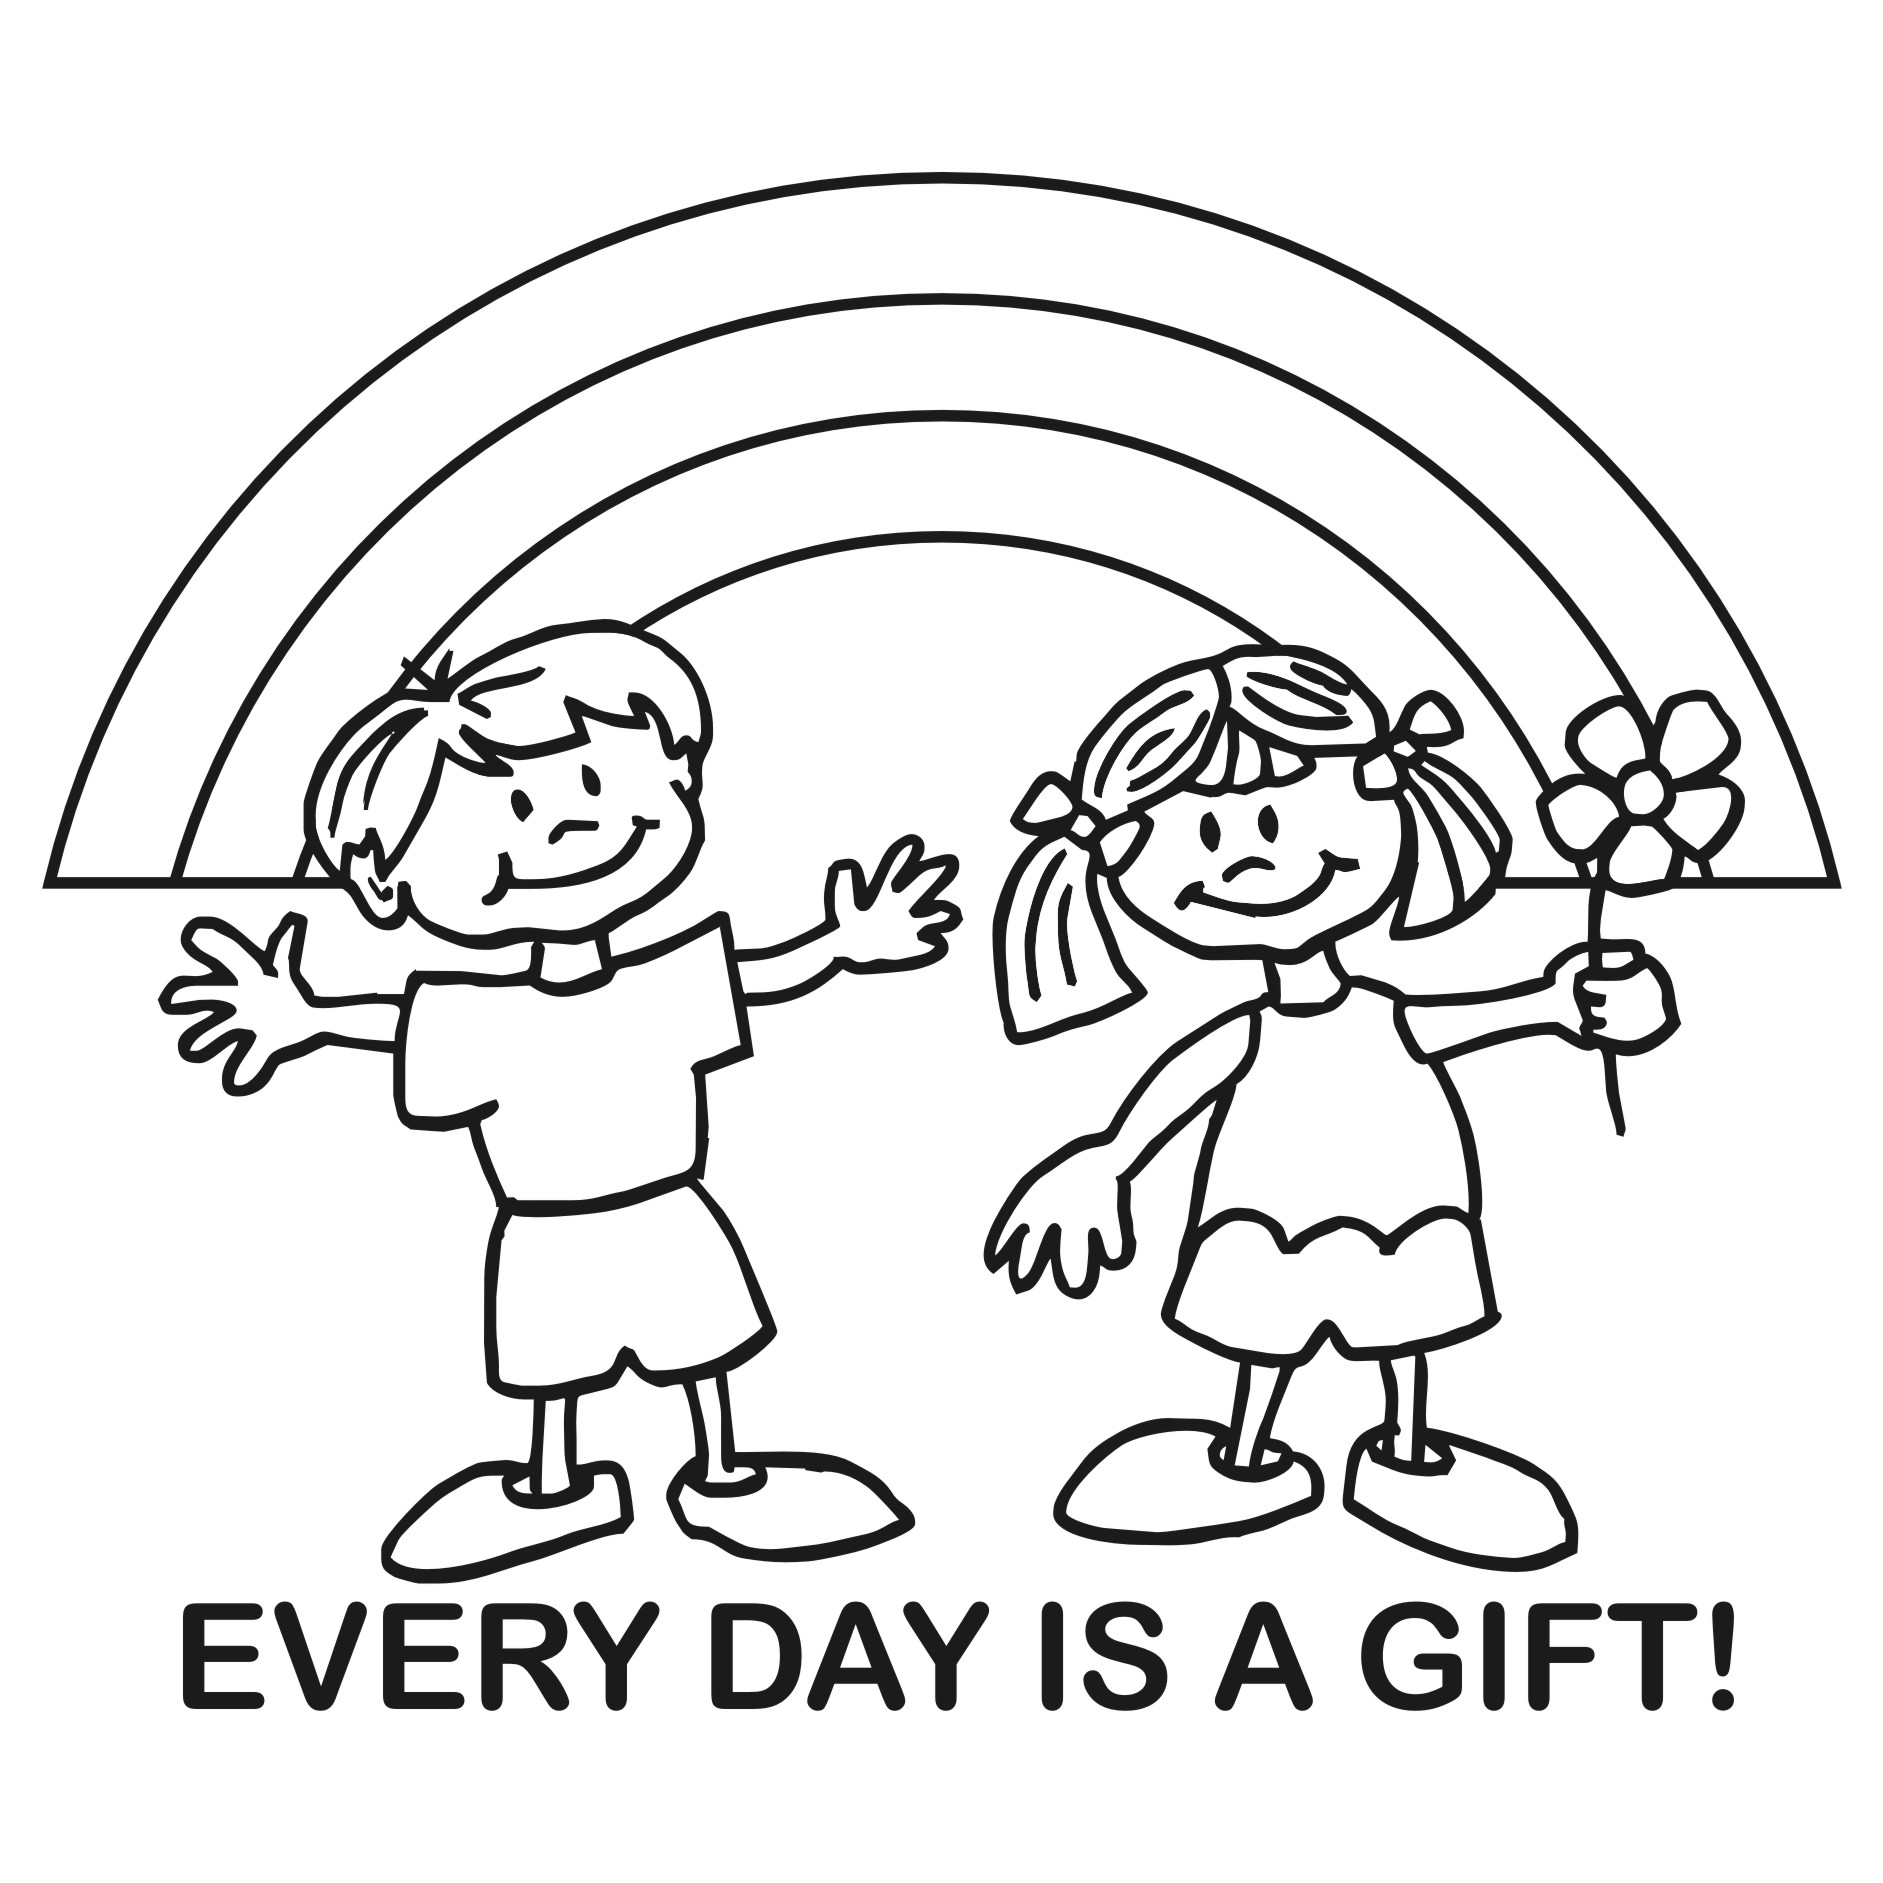 Clipart for every day of every year.